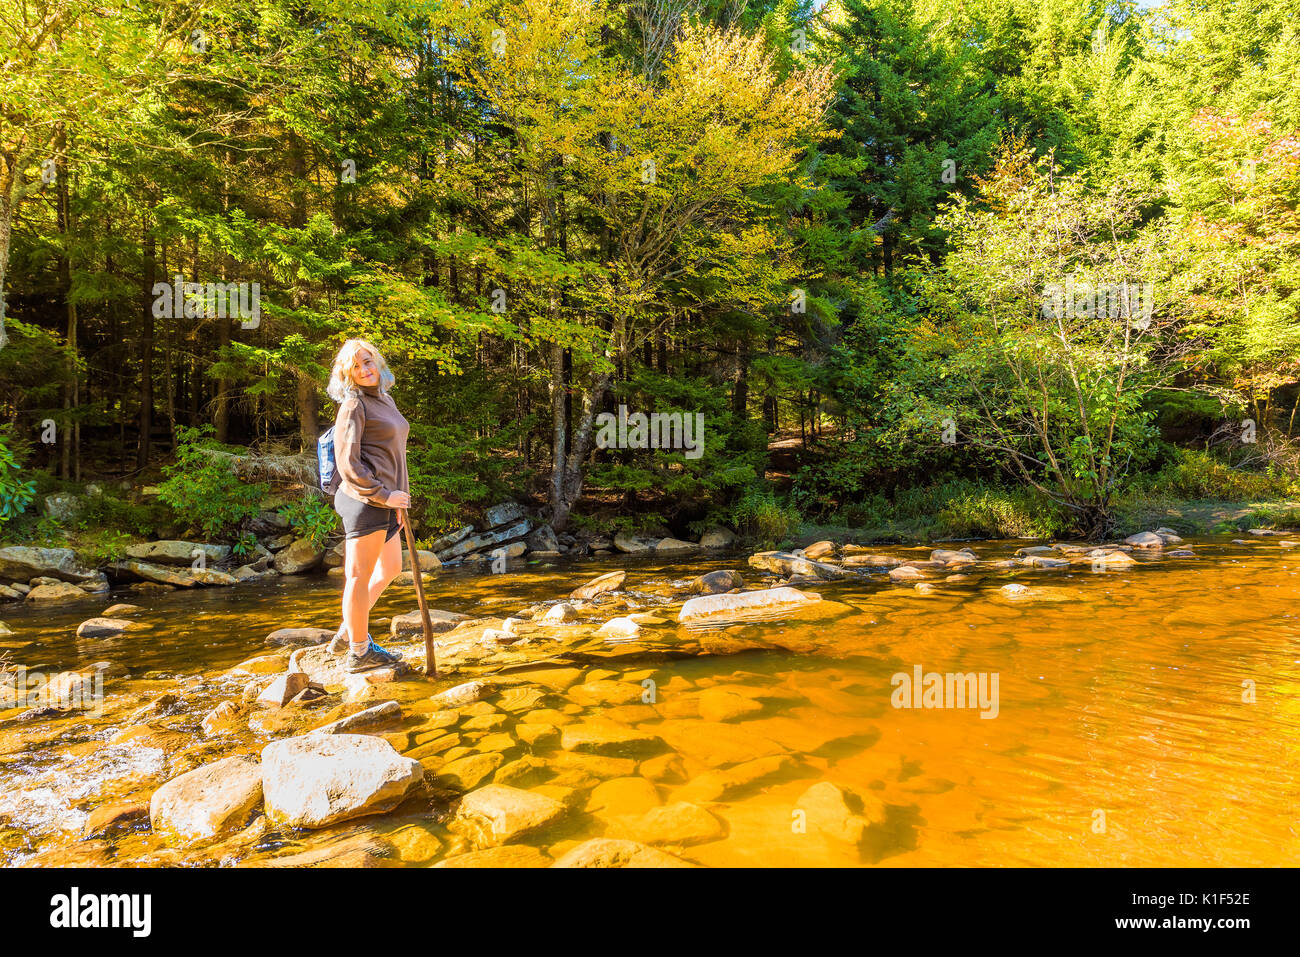 Young woman with stick crossing Red Creek river in Dolly Sods, West Virginia smiling - Stock Image